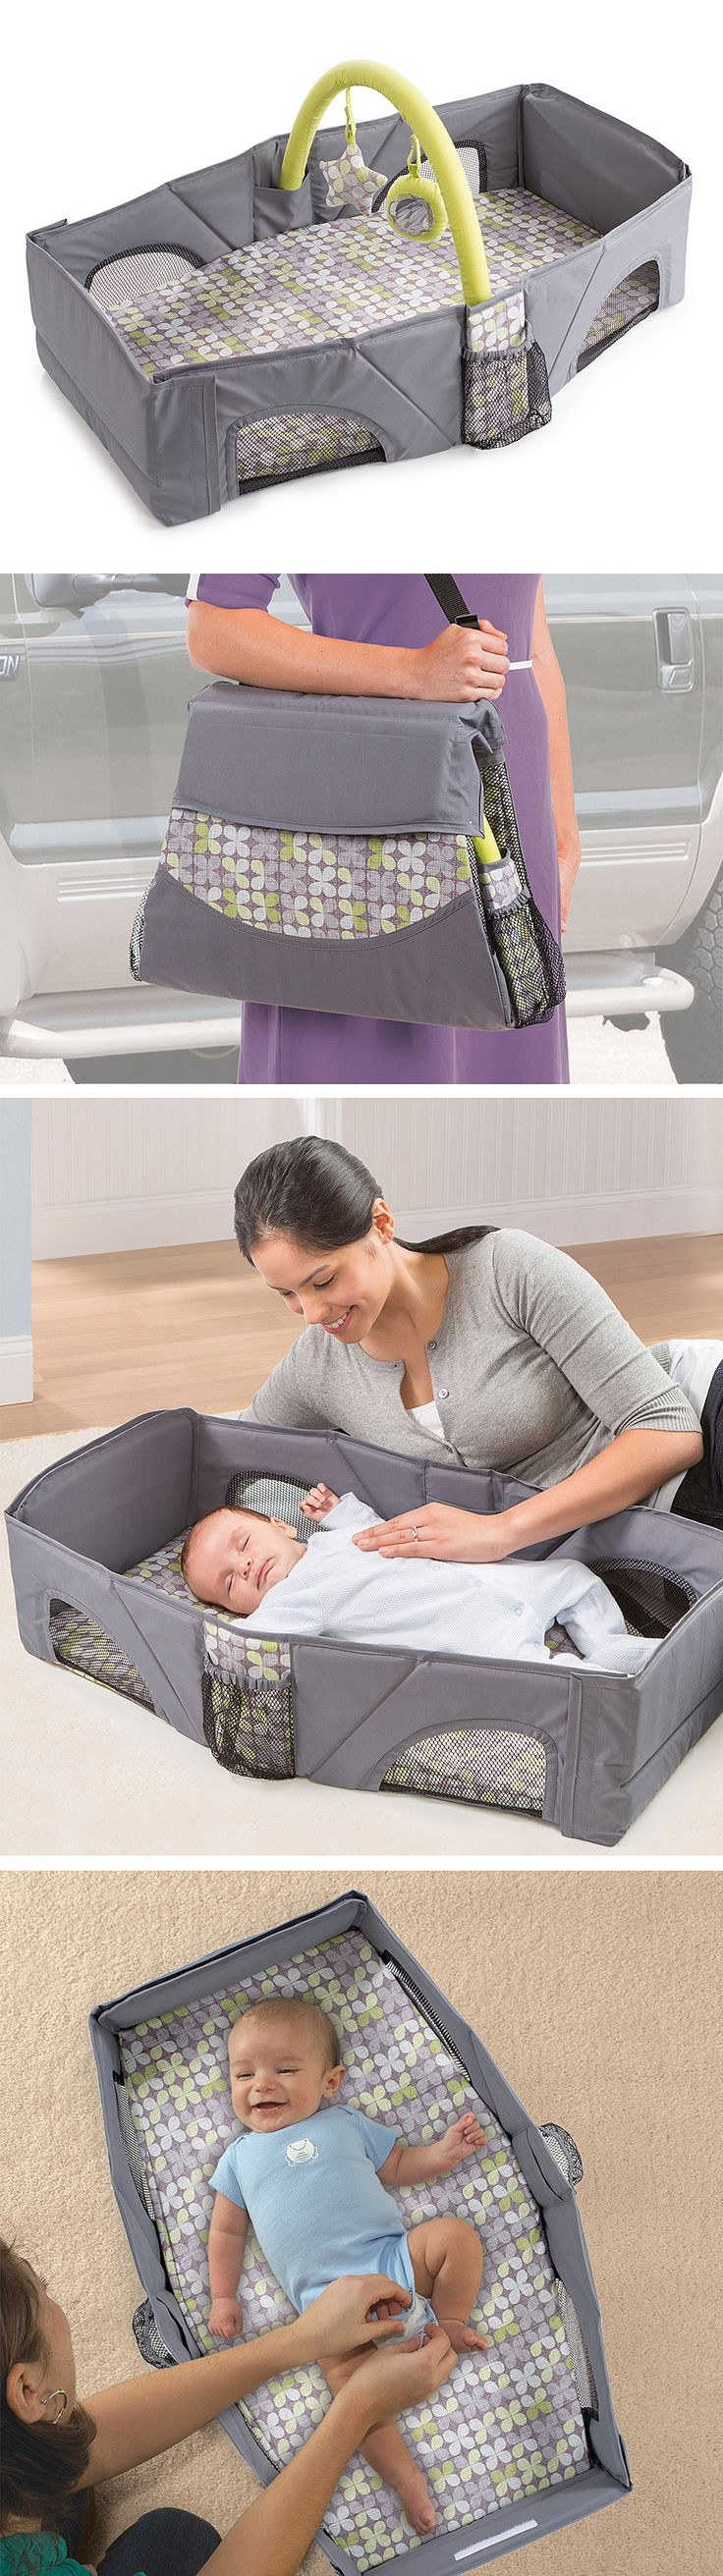 Folding Travel Crib Bed & Diaper Play Station // folds up to the size of a…